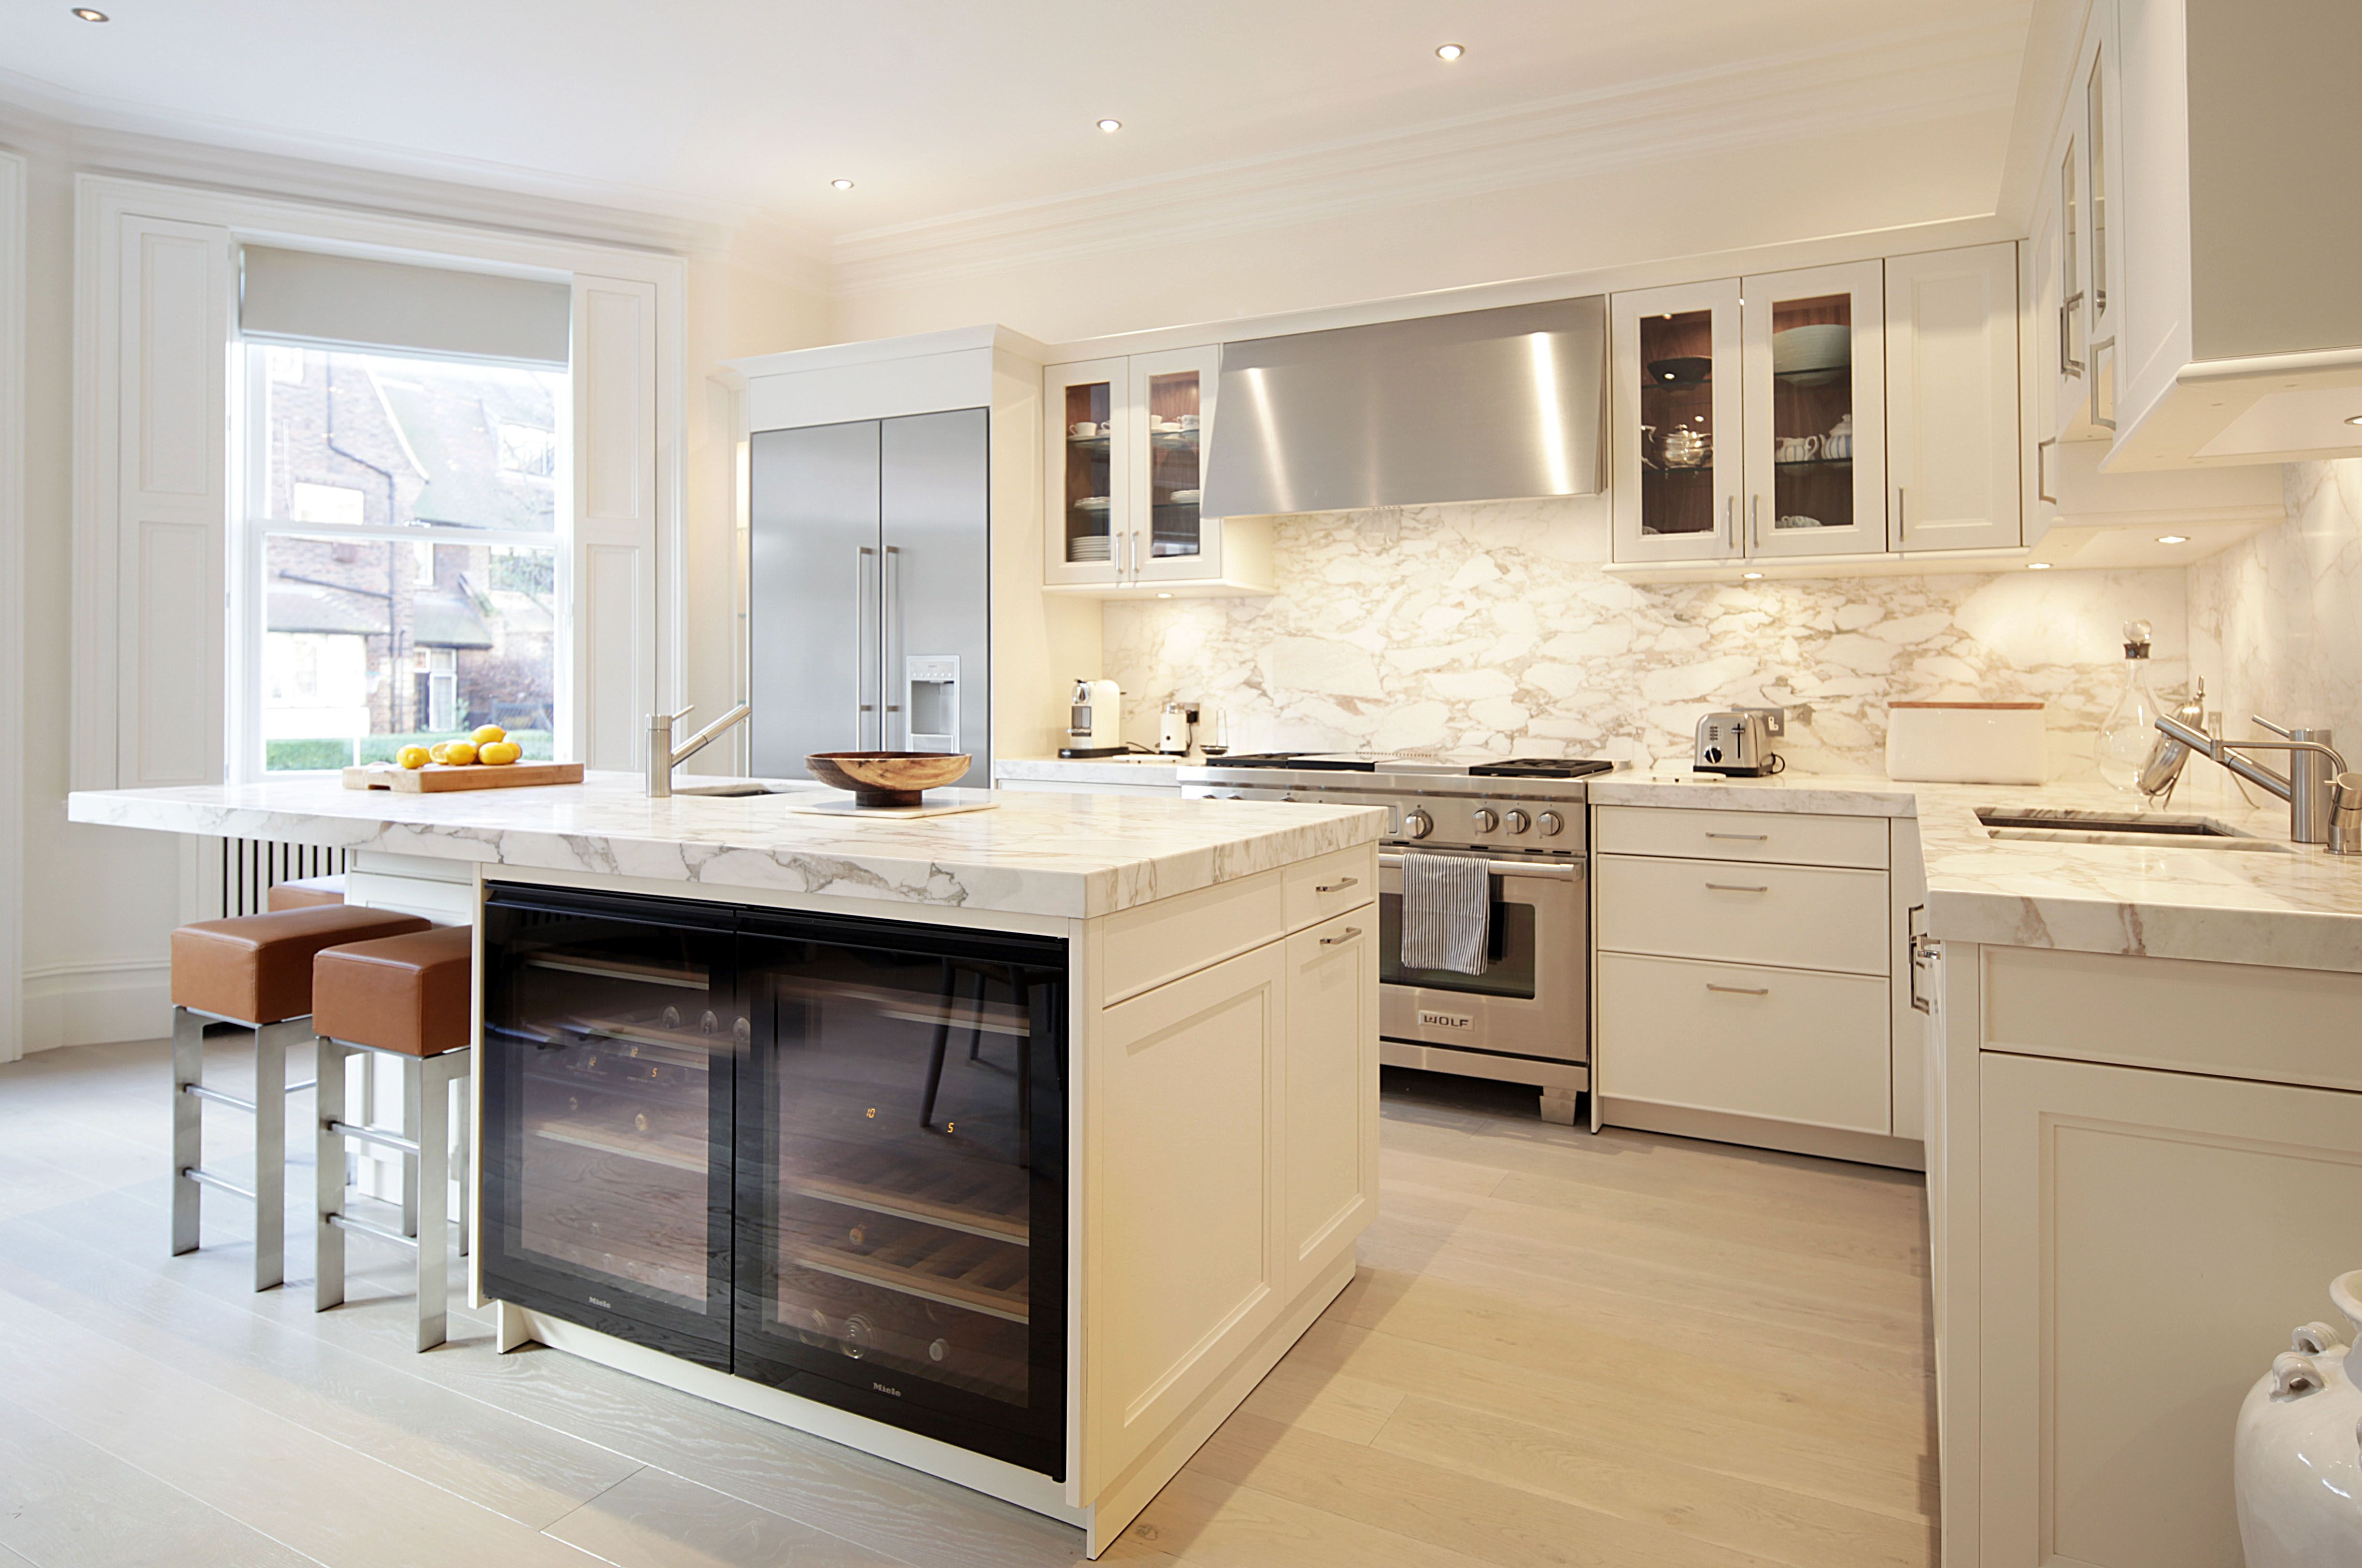 Ormonde Gate Kitchen Design Thurloe White Bespoke Cabinetry